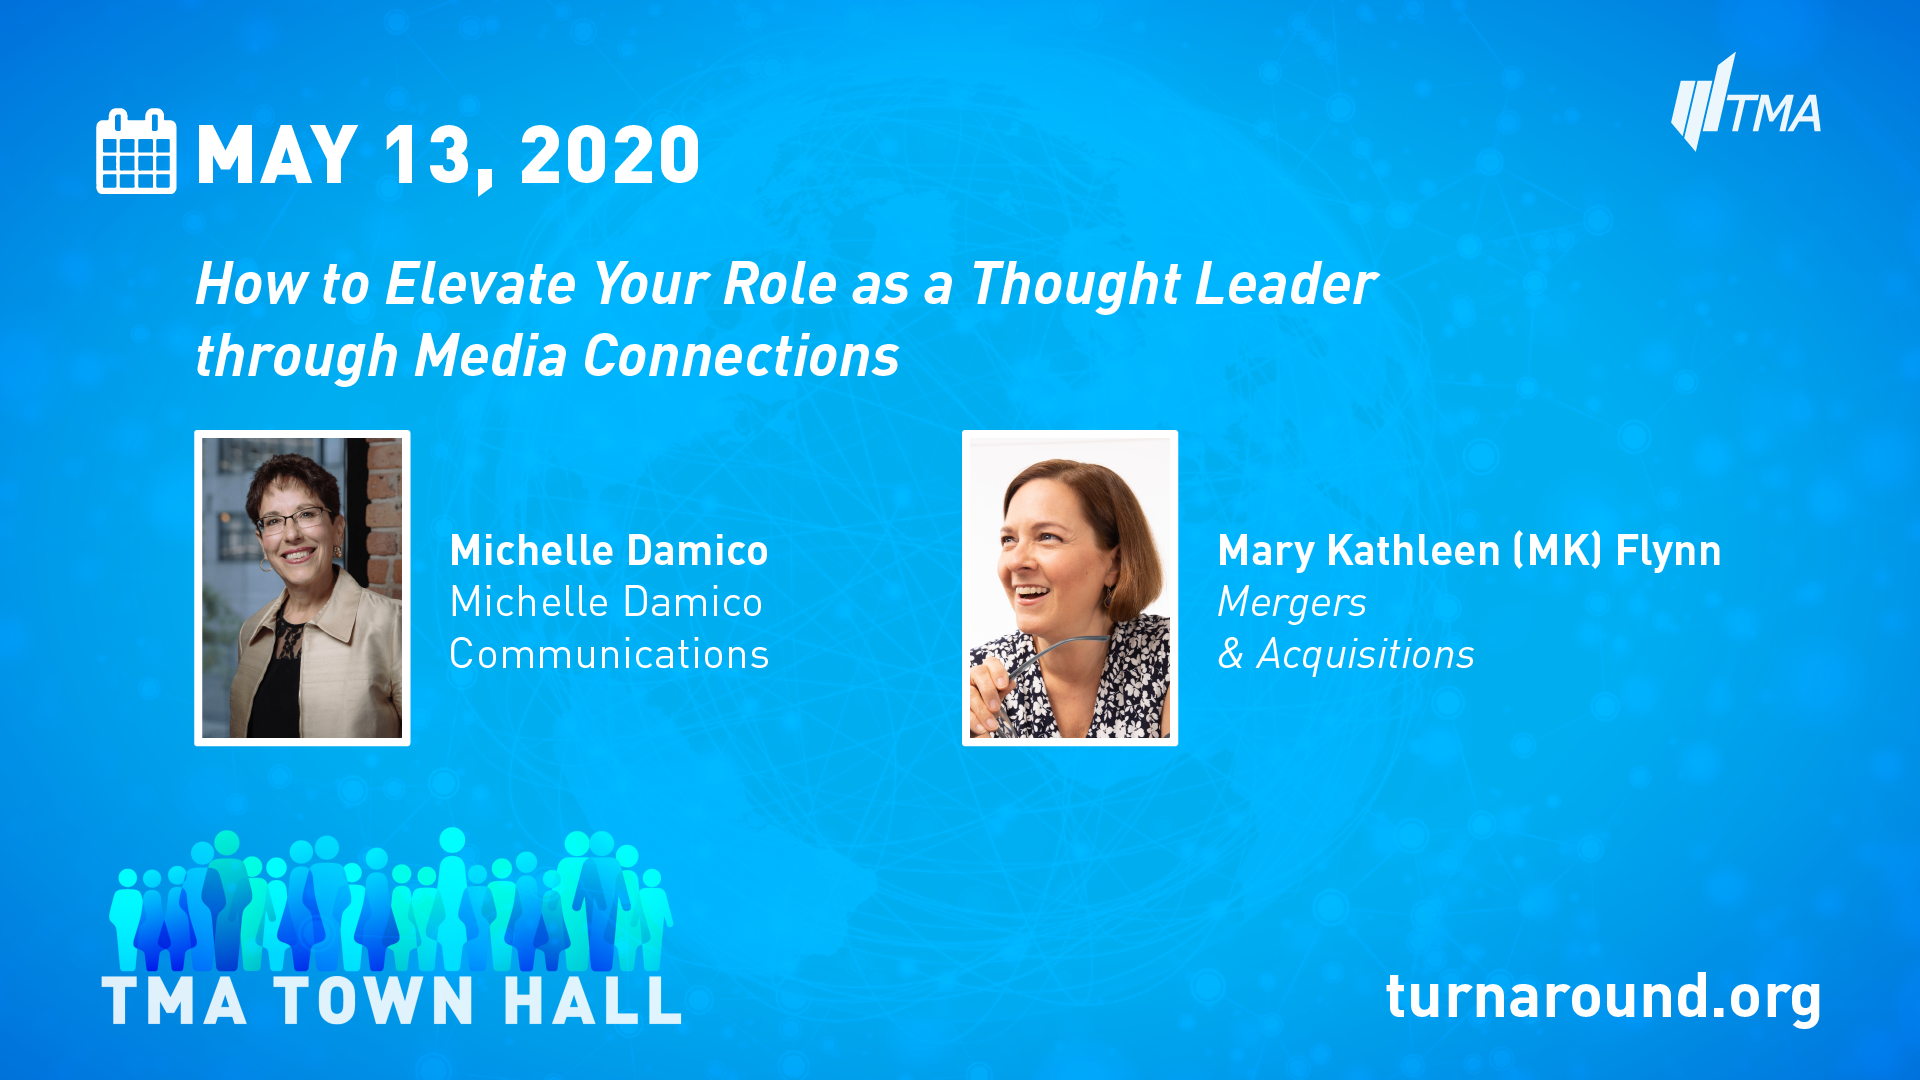 TMA Town Hall for May 13, 2020